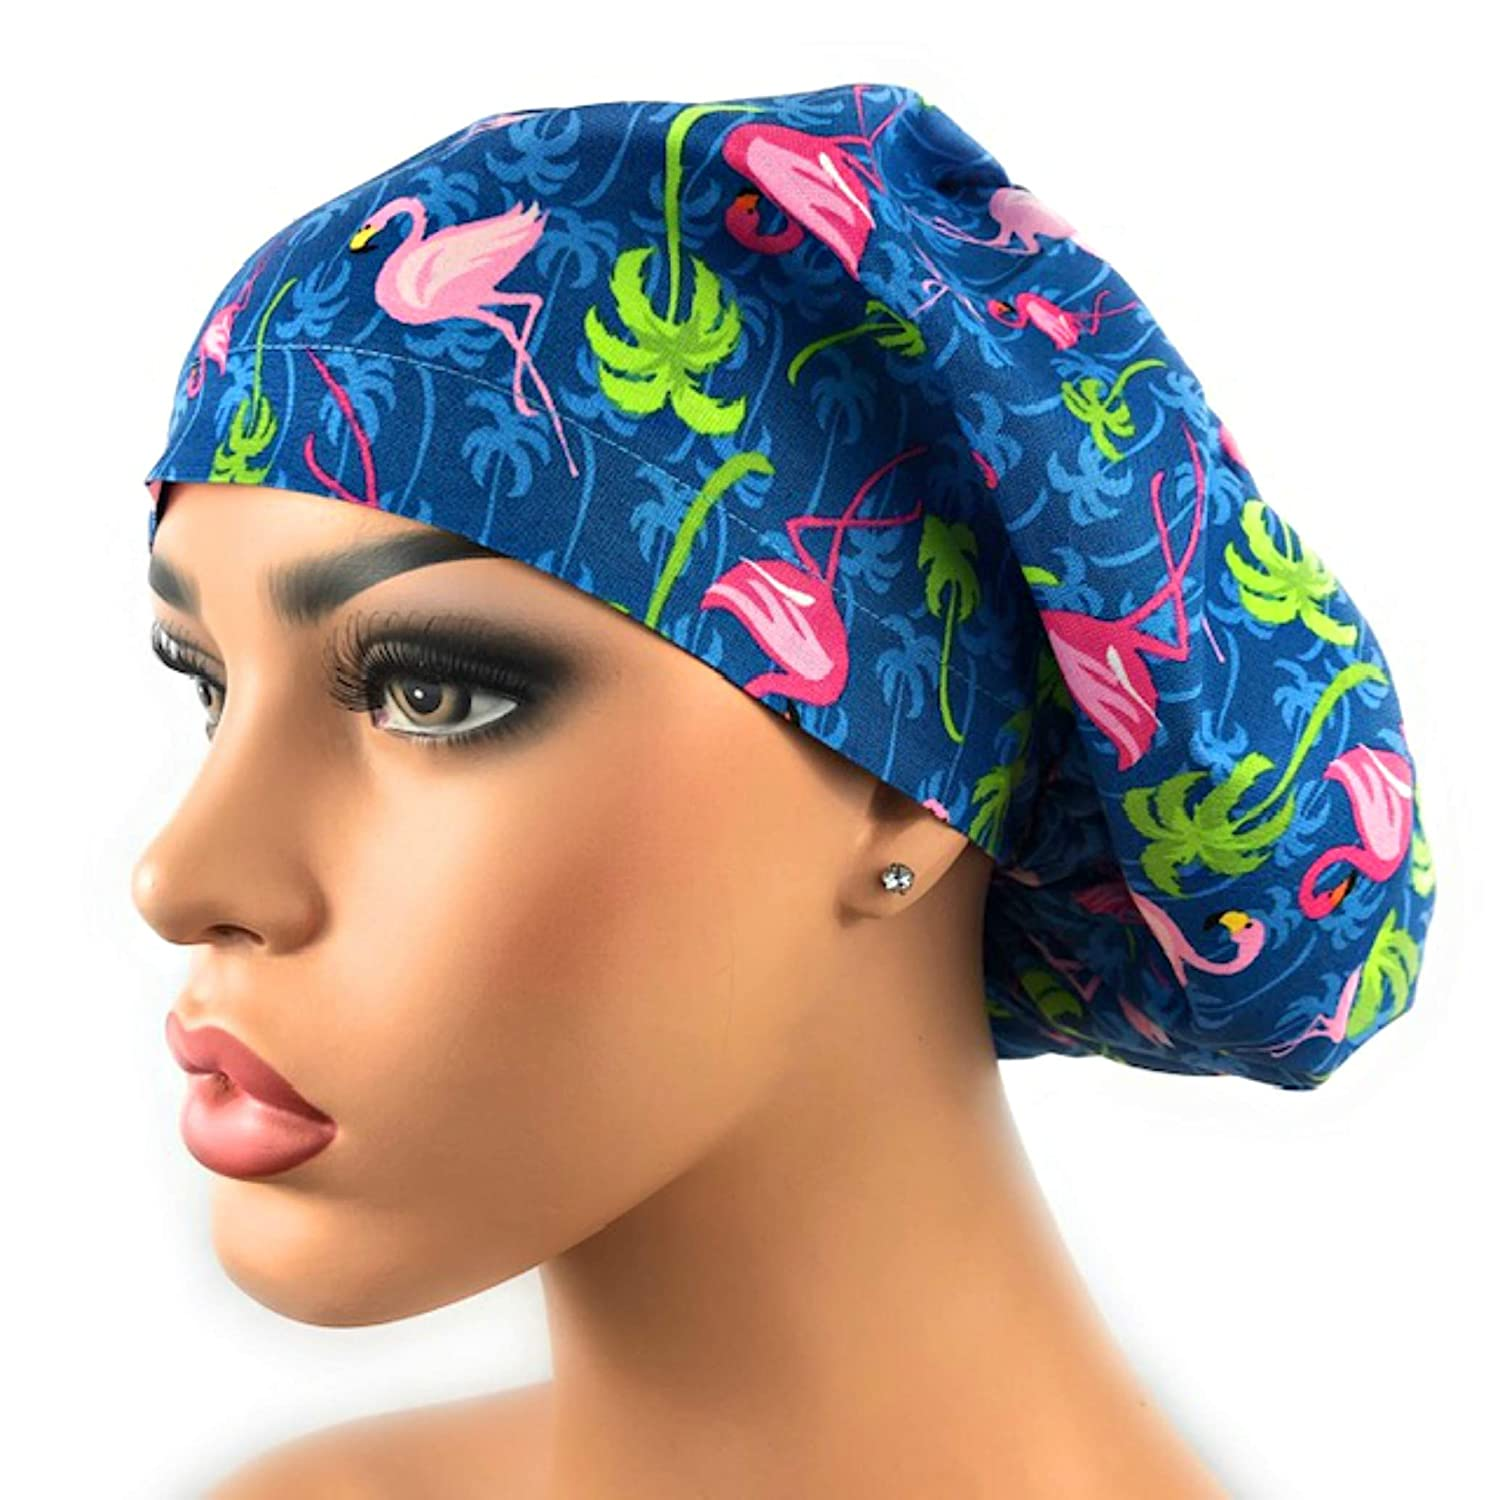 FENICAL Adjustable Surgical Cap Cotton Flamingo Pattern Scrub Hat Medical Doctor Nurse Sweat Absorption Beanie for Woman Man